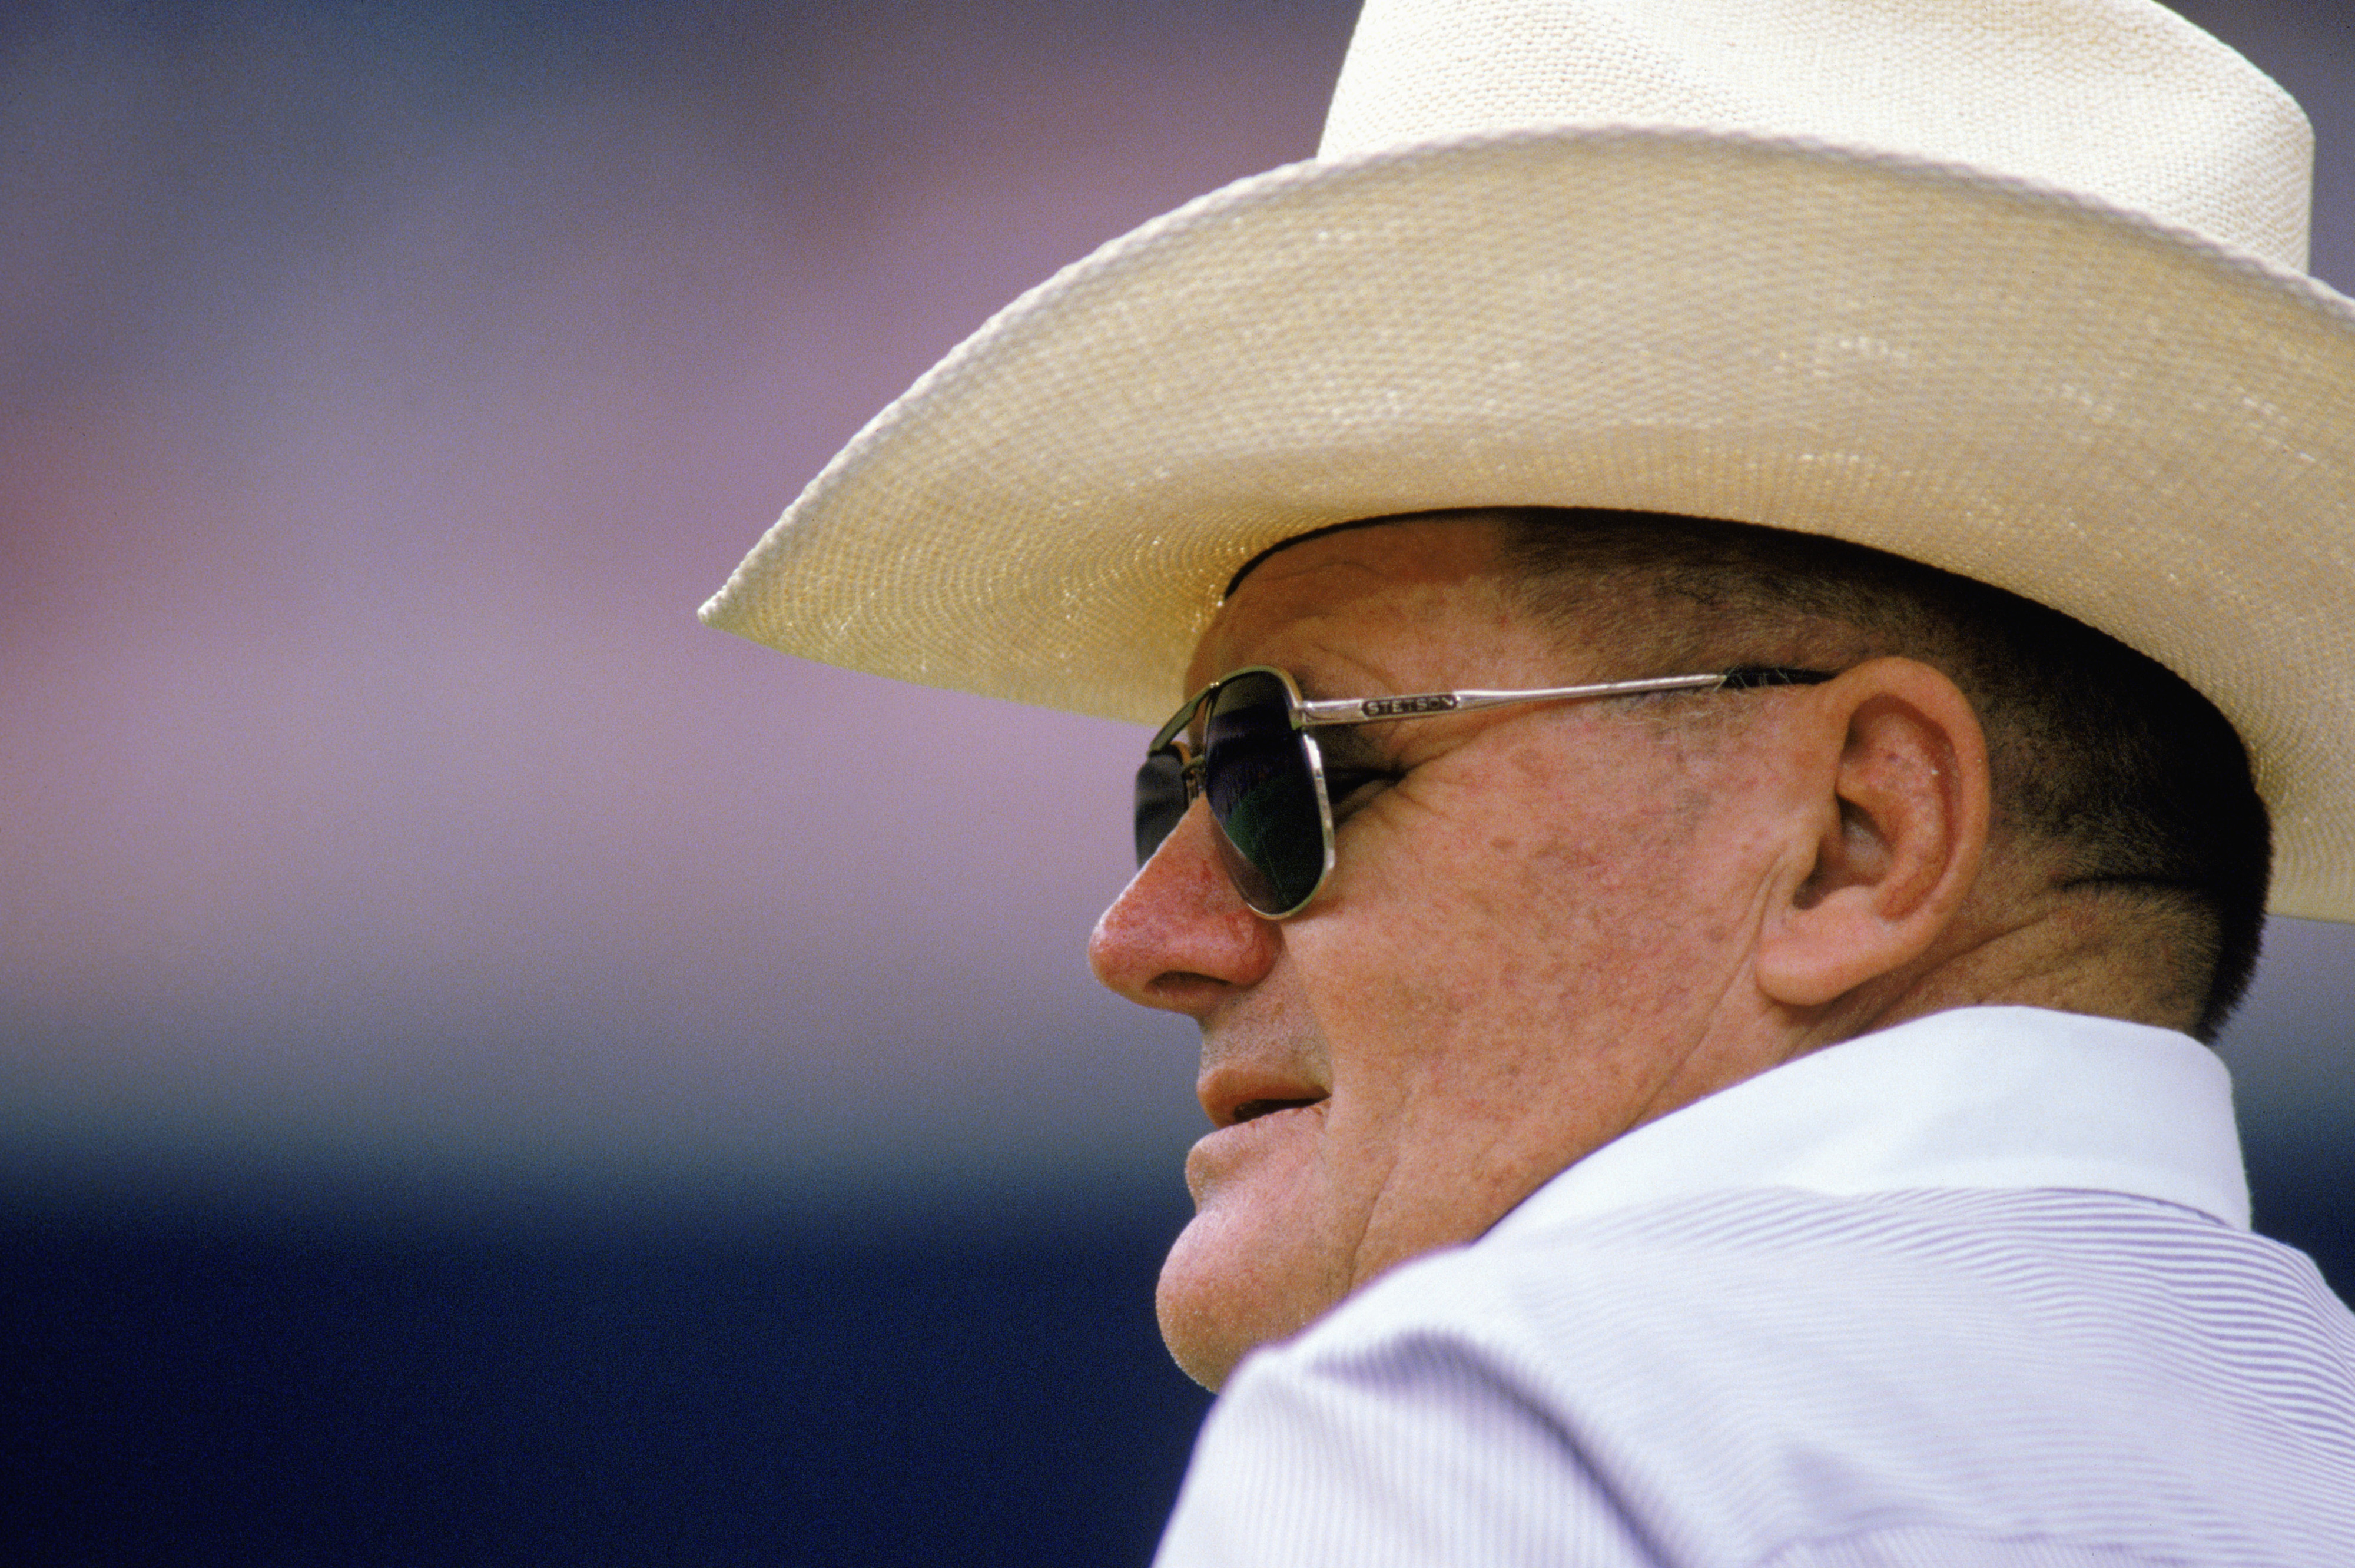 A head coach who wears cowboy hats... try picturing this in today's NFL.